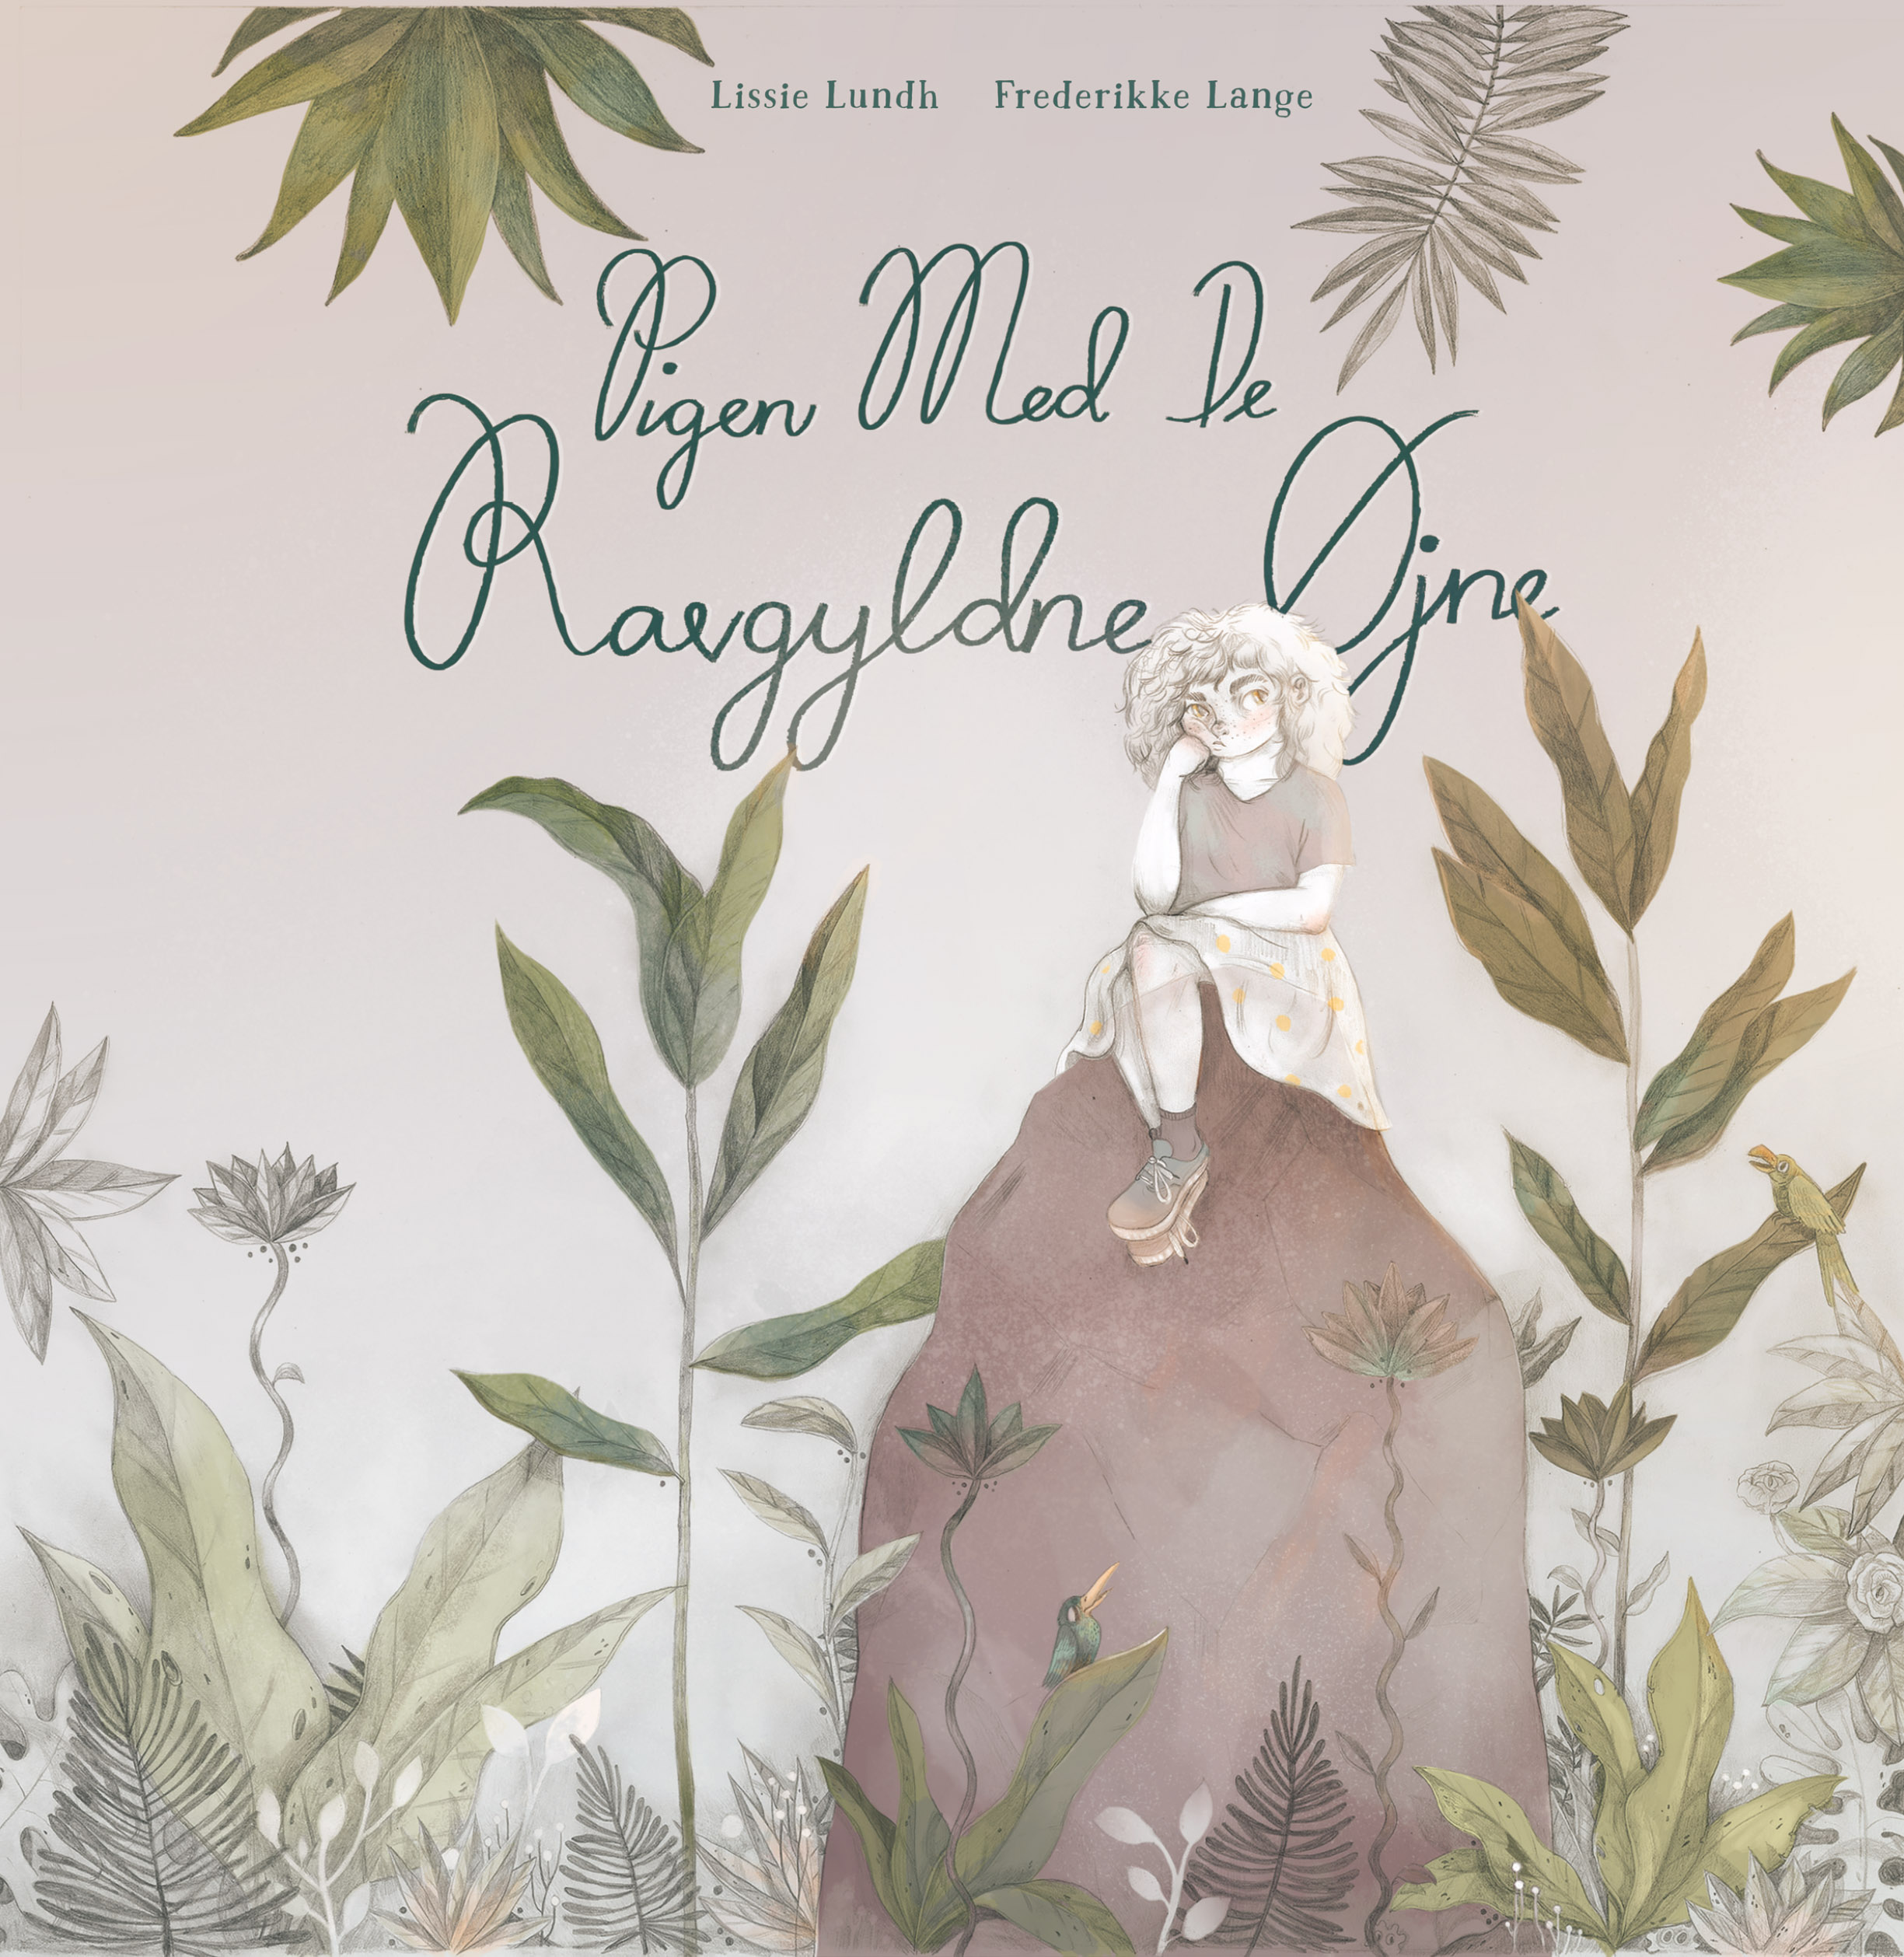 'Pigen med de ravgyldne øjne', cover from 'The girl with amber eyes' illustrated by Frederikke Lange and written by Lissie Lundh.